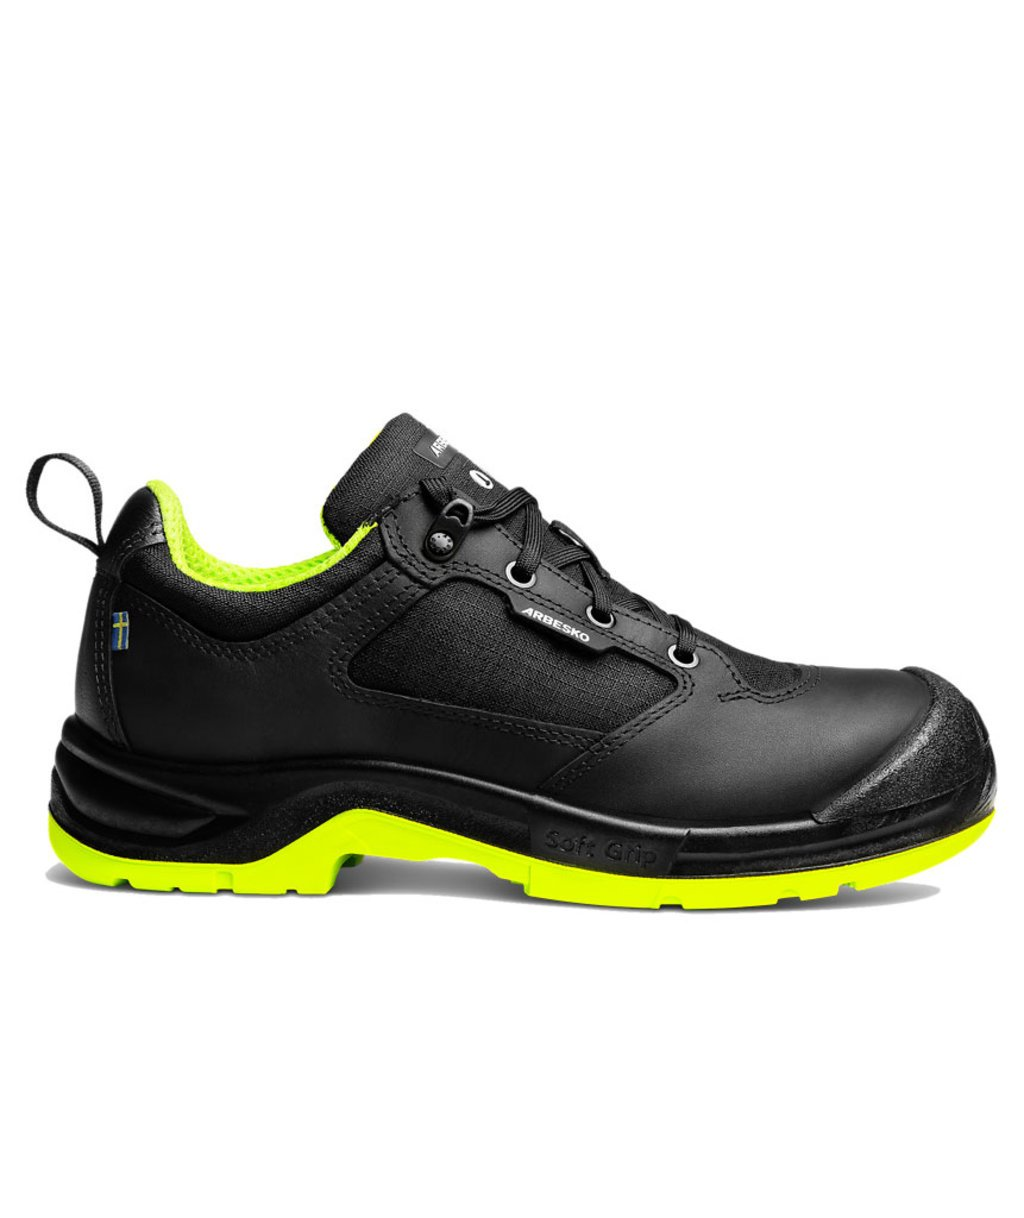 Arbesko 943 safety shoes S3, Black/Lime